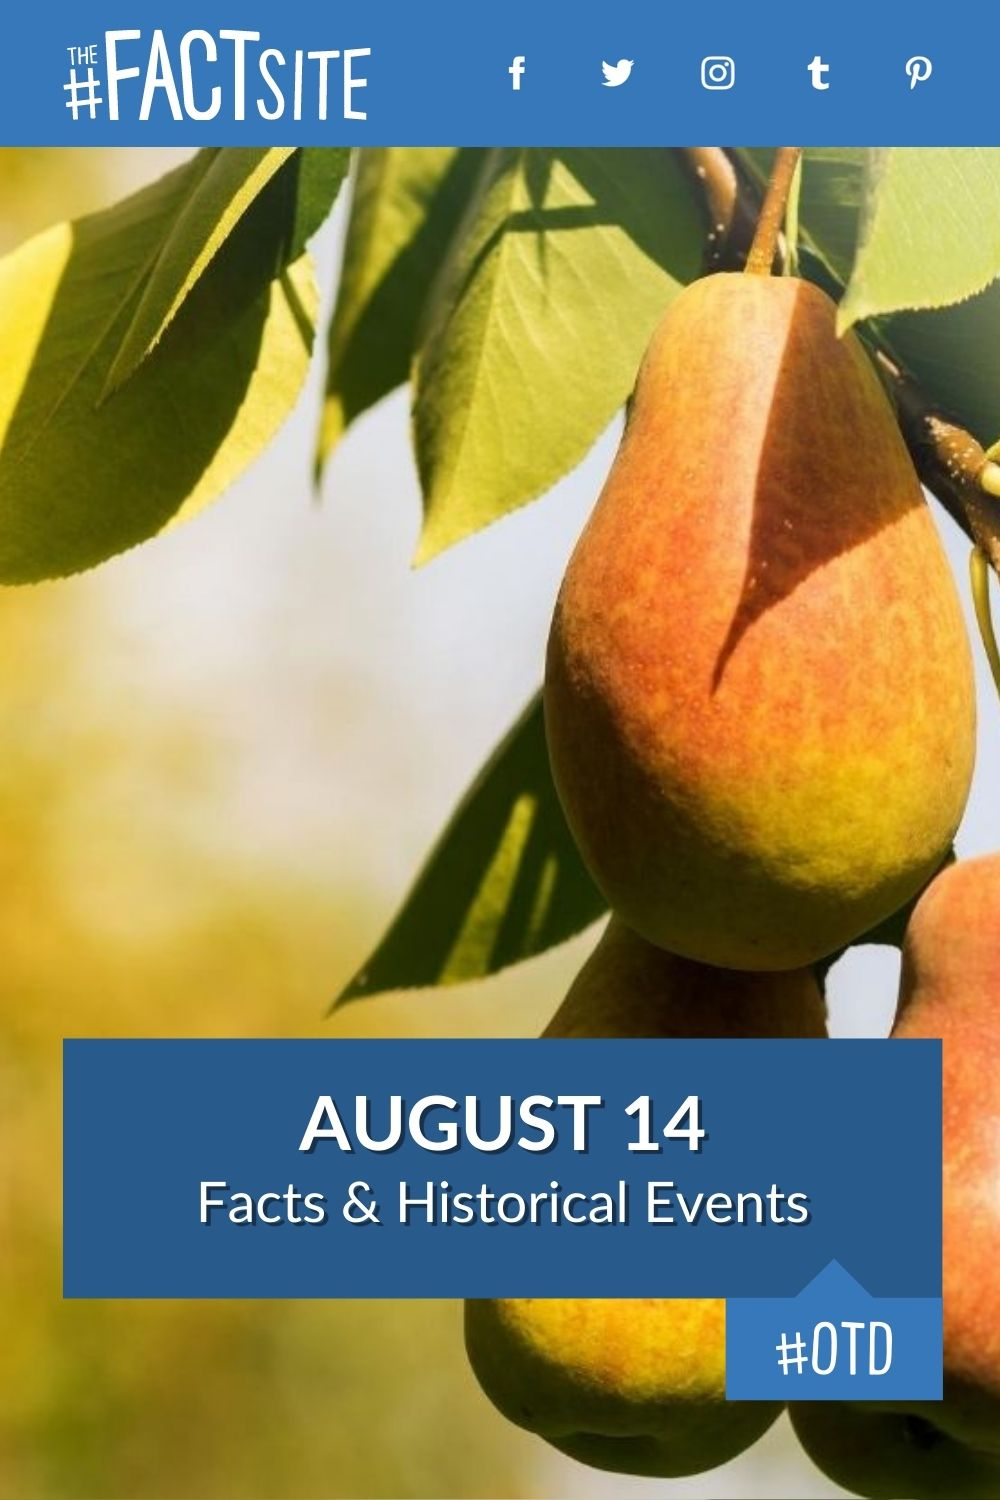 Facts & Historic Events That Happened on August 14